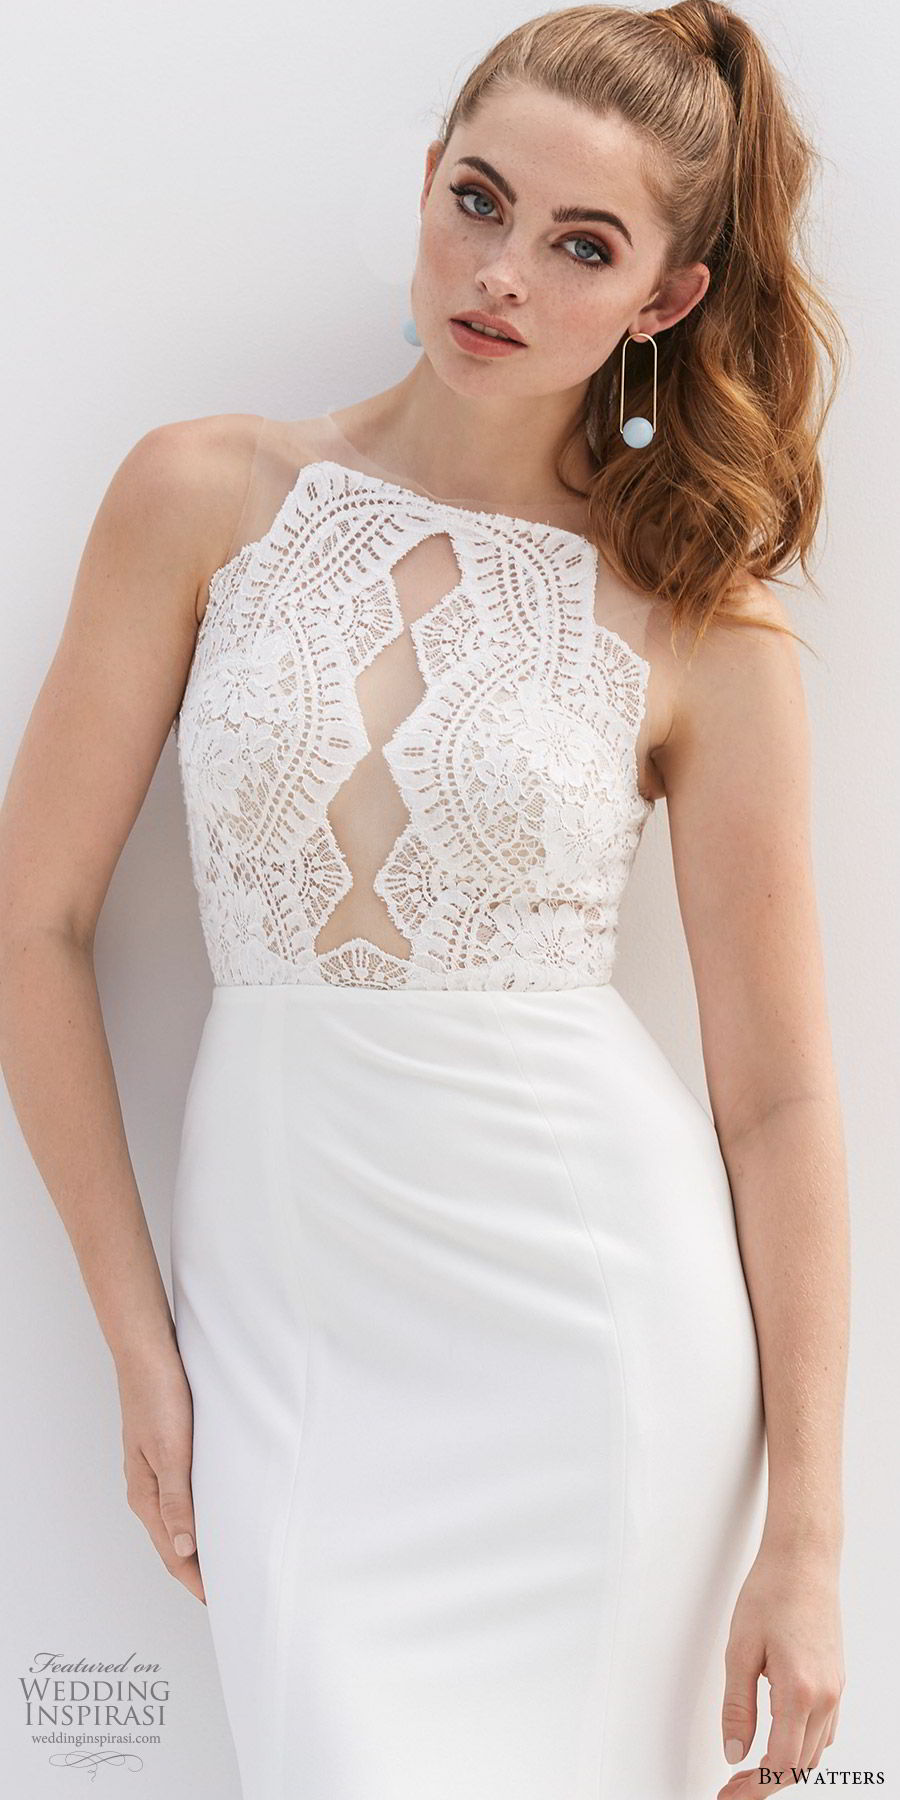 by watters 2020 bridal sleeveless illusion jewel neck sheer lace bodice fit flare sheath trumpet wedding dress (8) clean modern chic zv